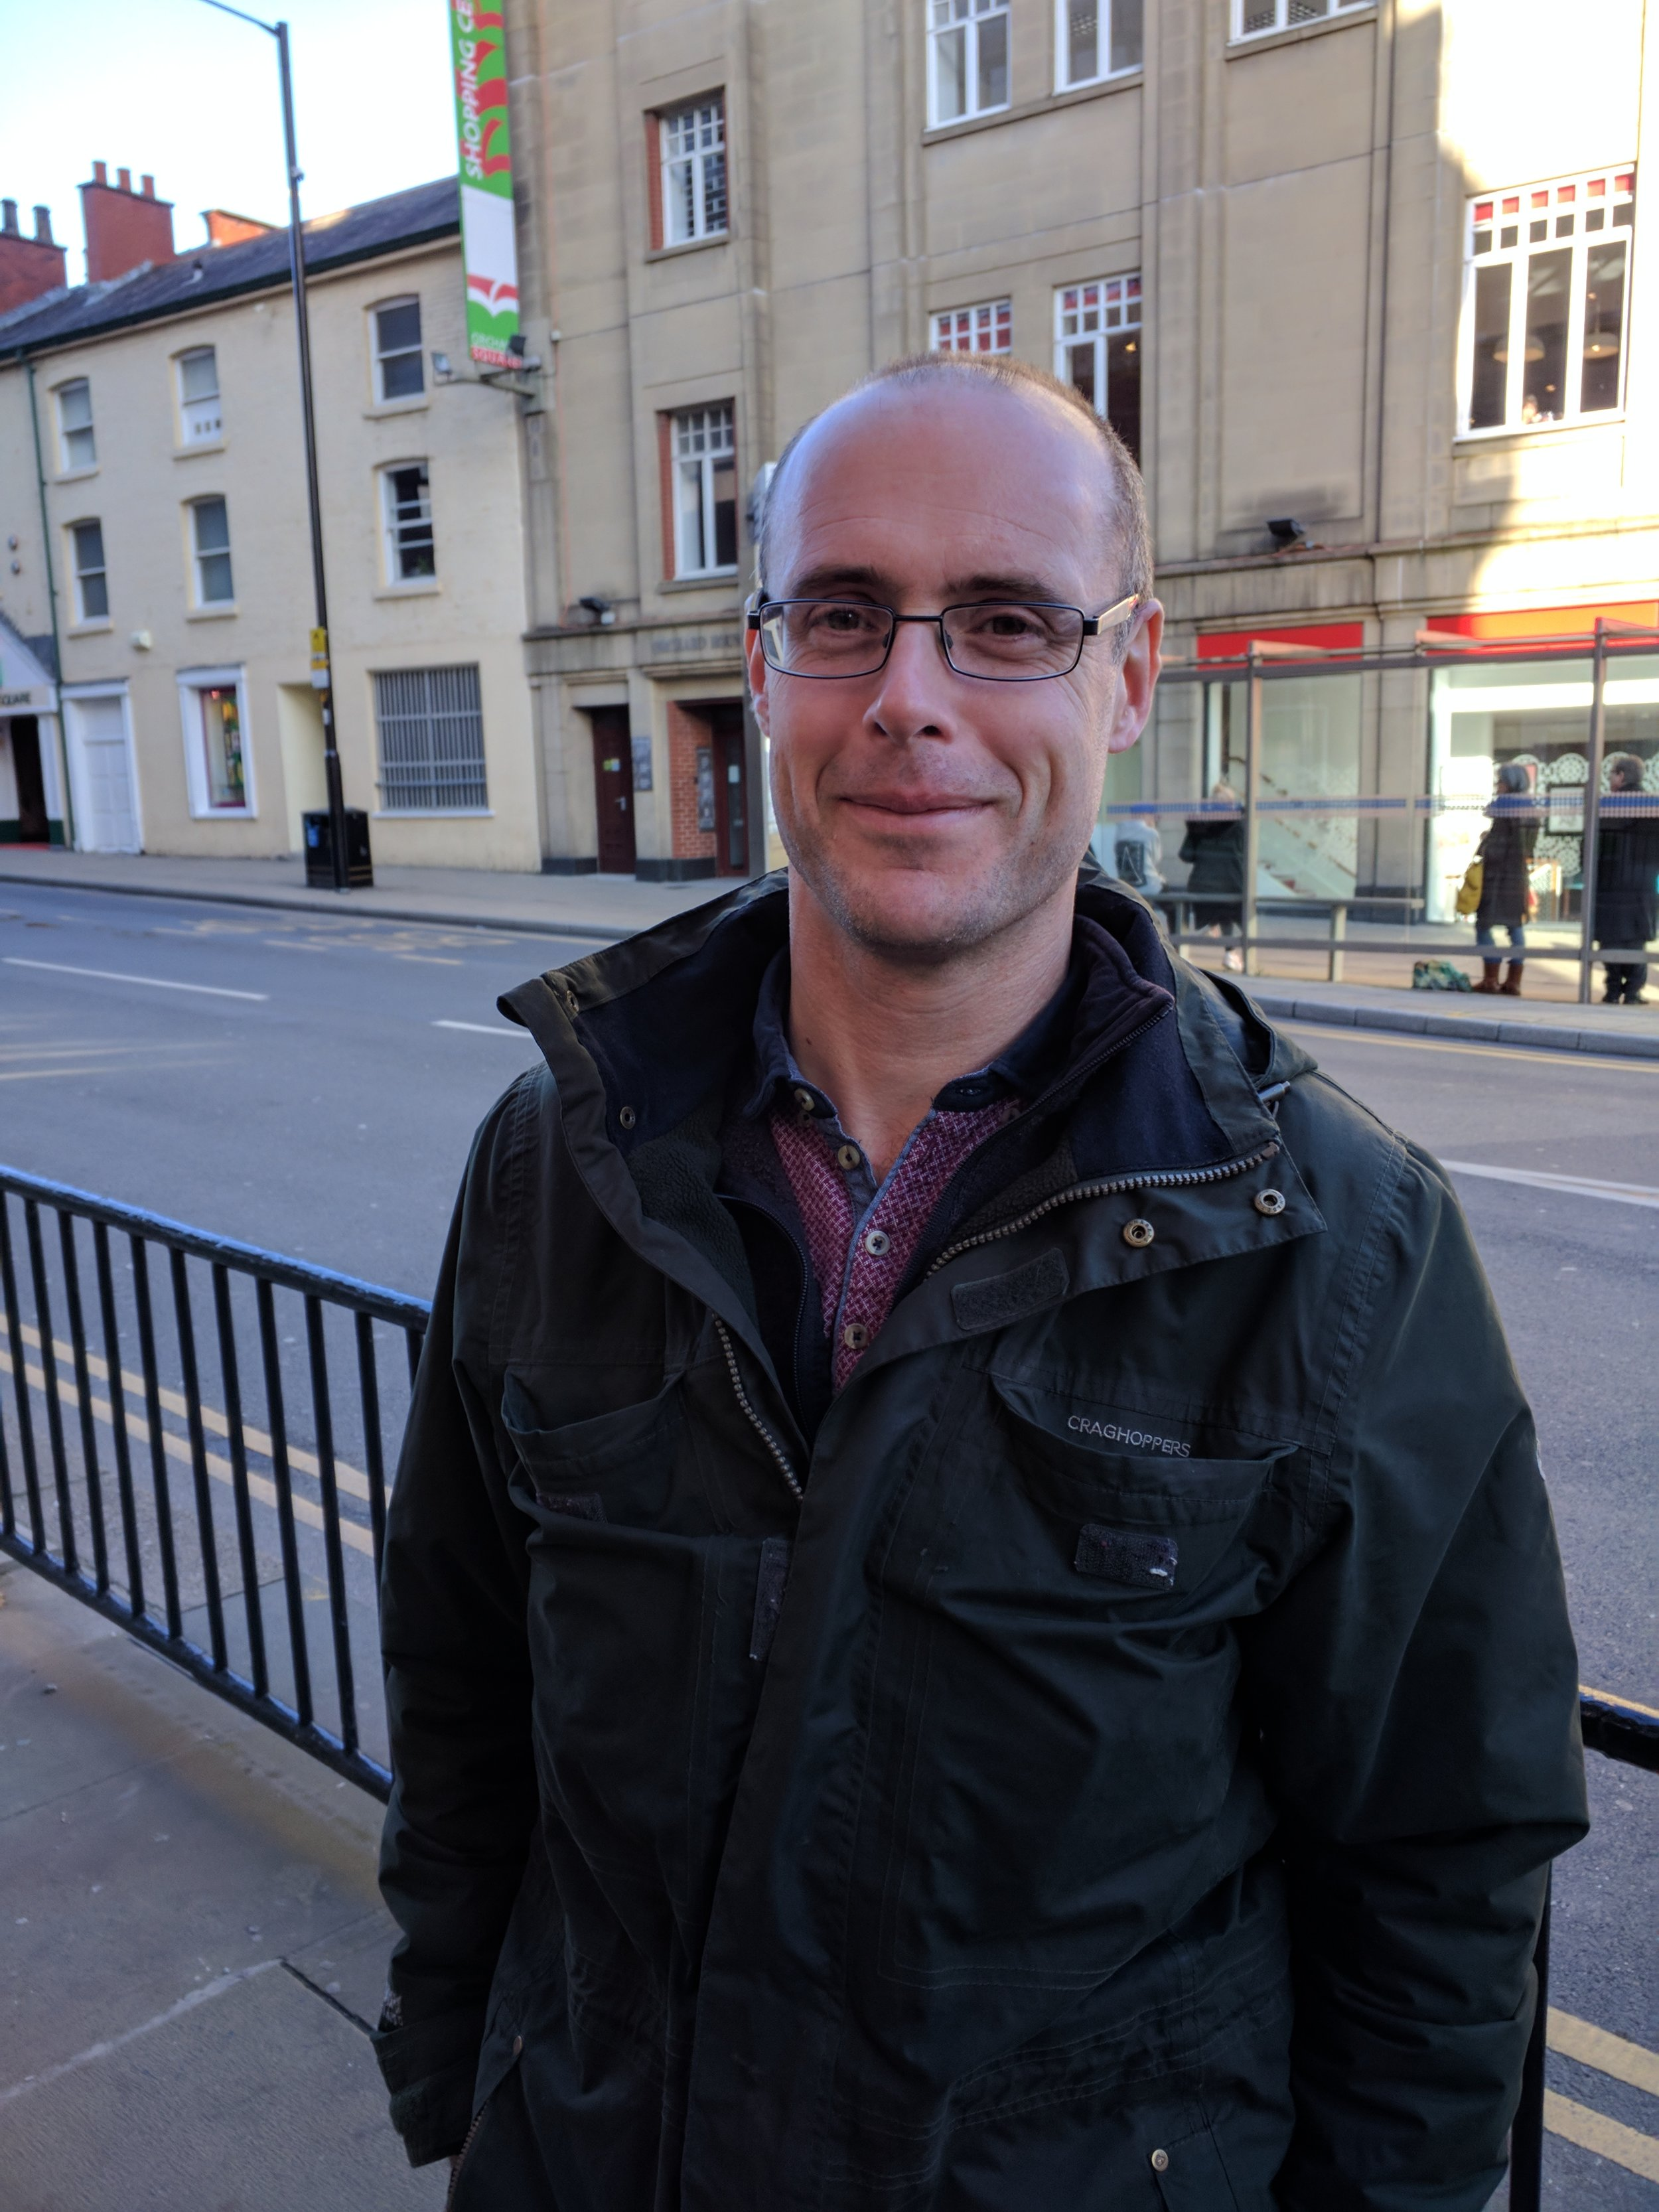 Dominic Gregory is a senior lecturer in the Department of Philosophy at the University of Sheffield. He has published numerous articles in various areas of philosophy, and OUP published his book,   Showing, Sensing, and Seeming  , in 2013.